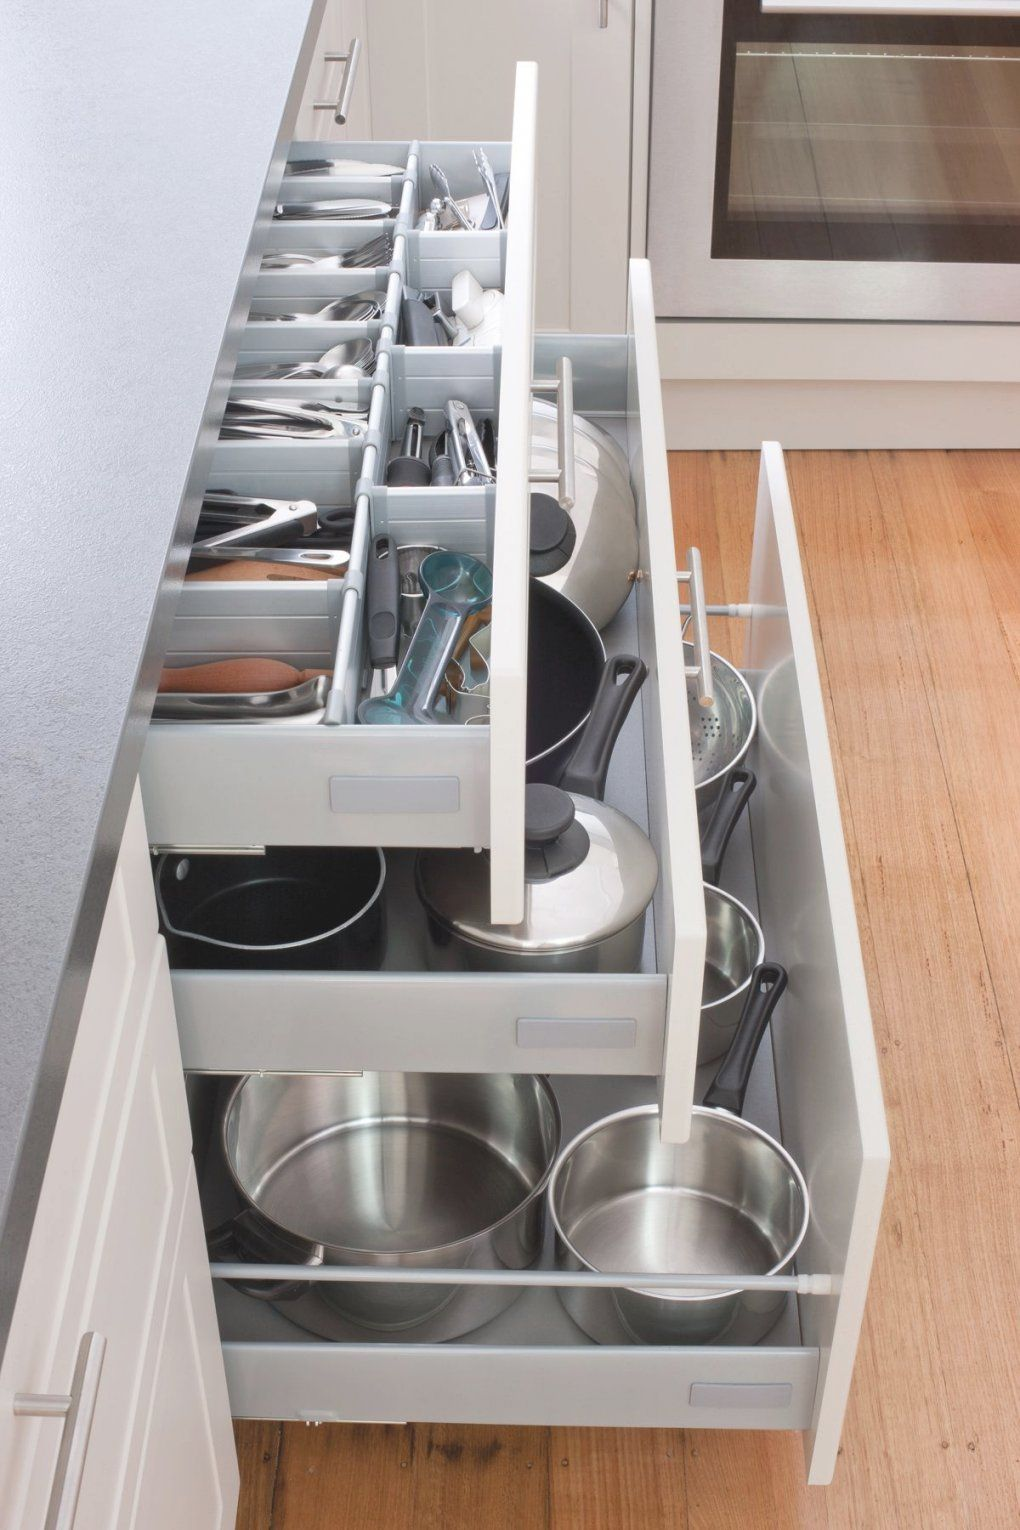 Pot Drawers Kitchen Cabinets In 2020 Kitchen Cabinet Organization Layout Kitchen Cabinets Decor Small Kitchen Organization